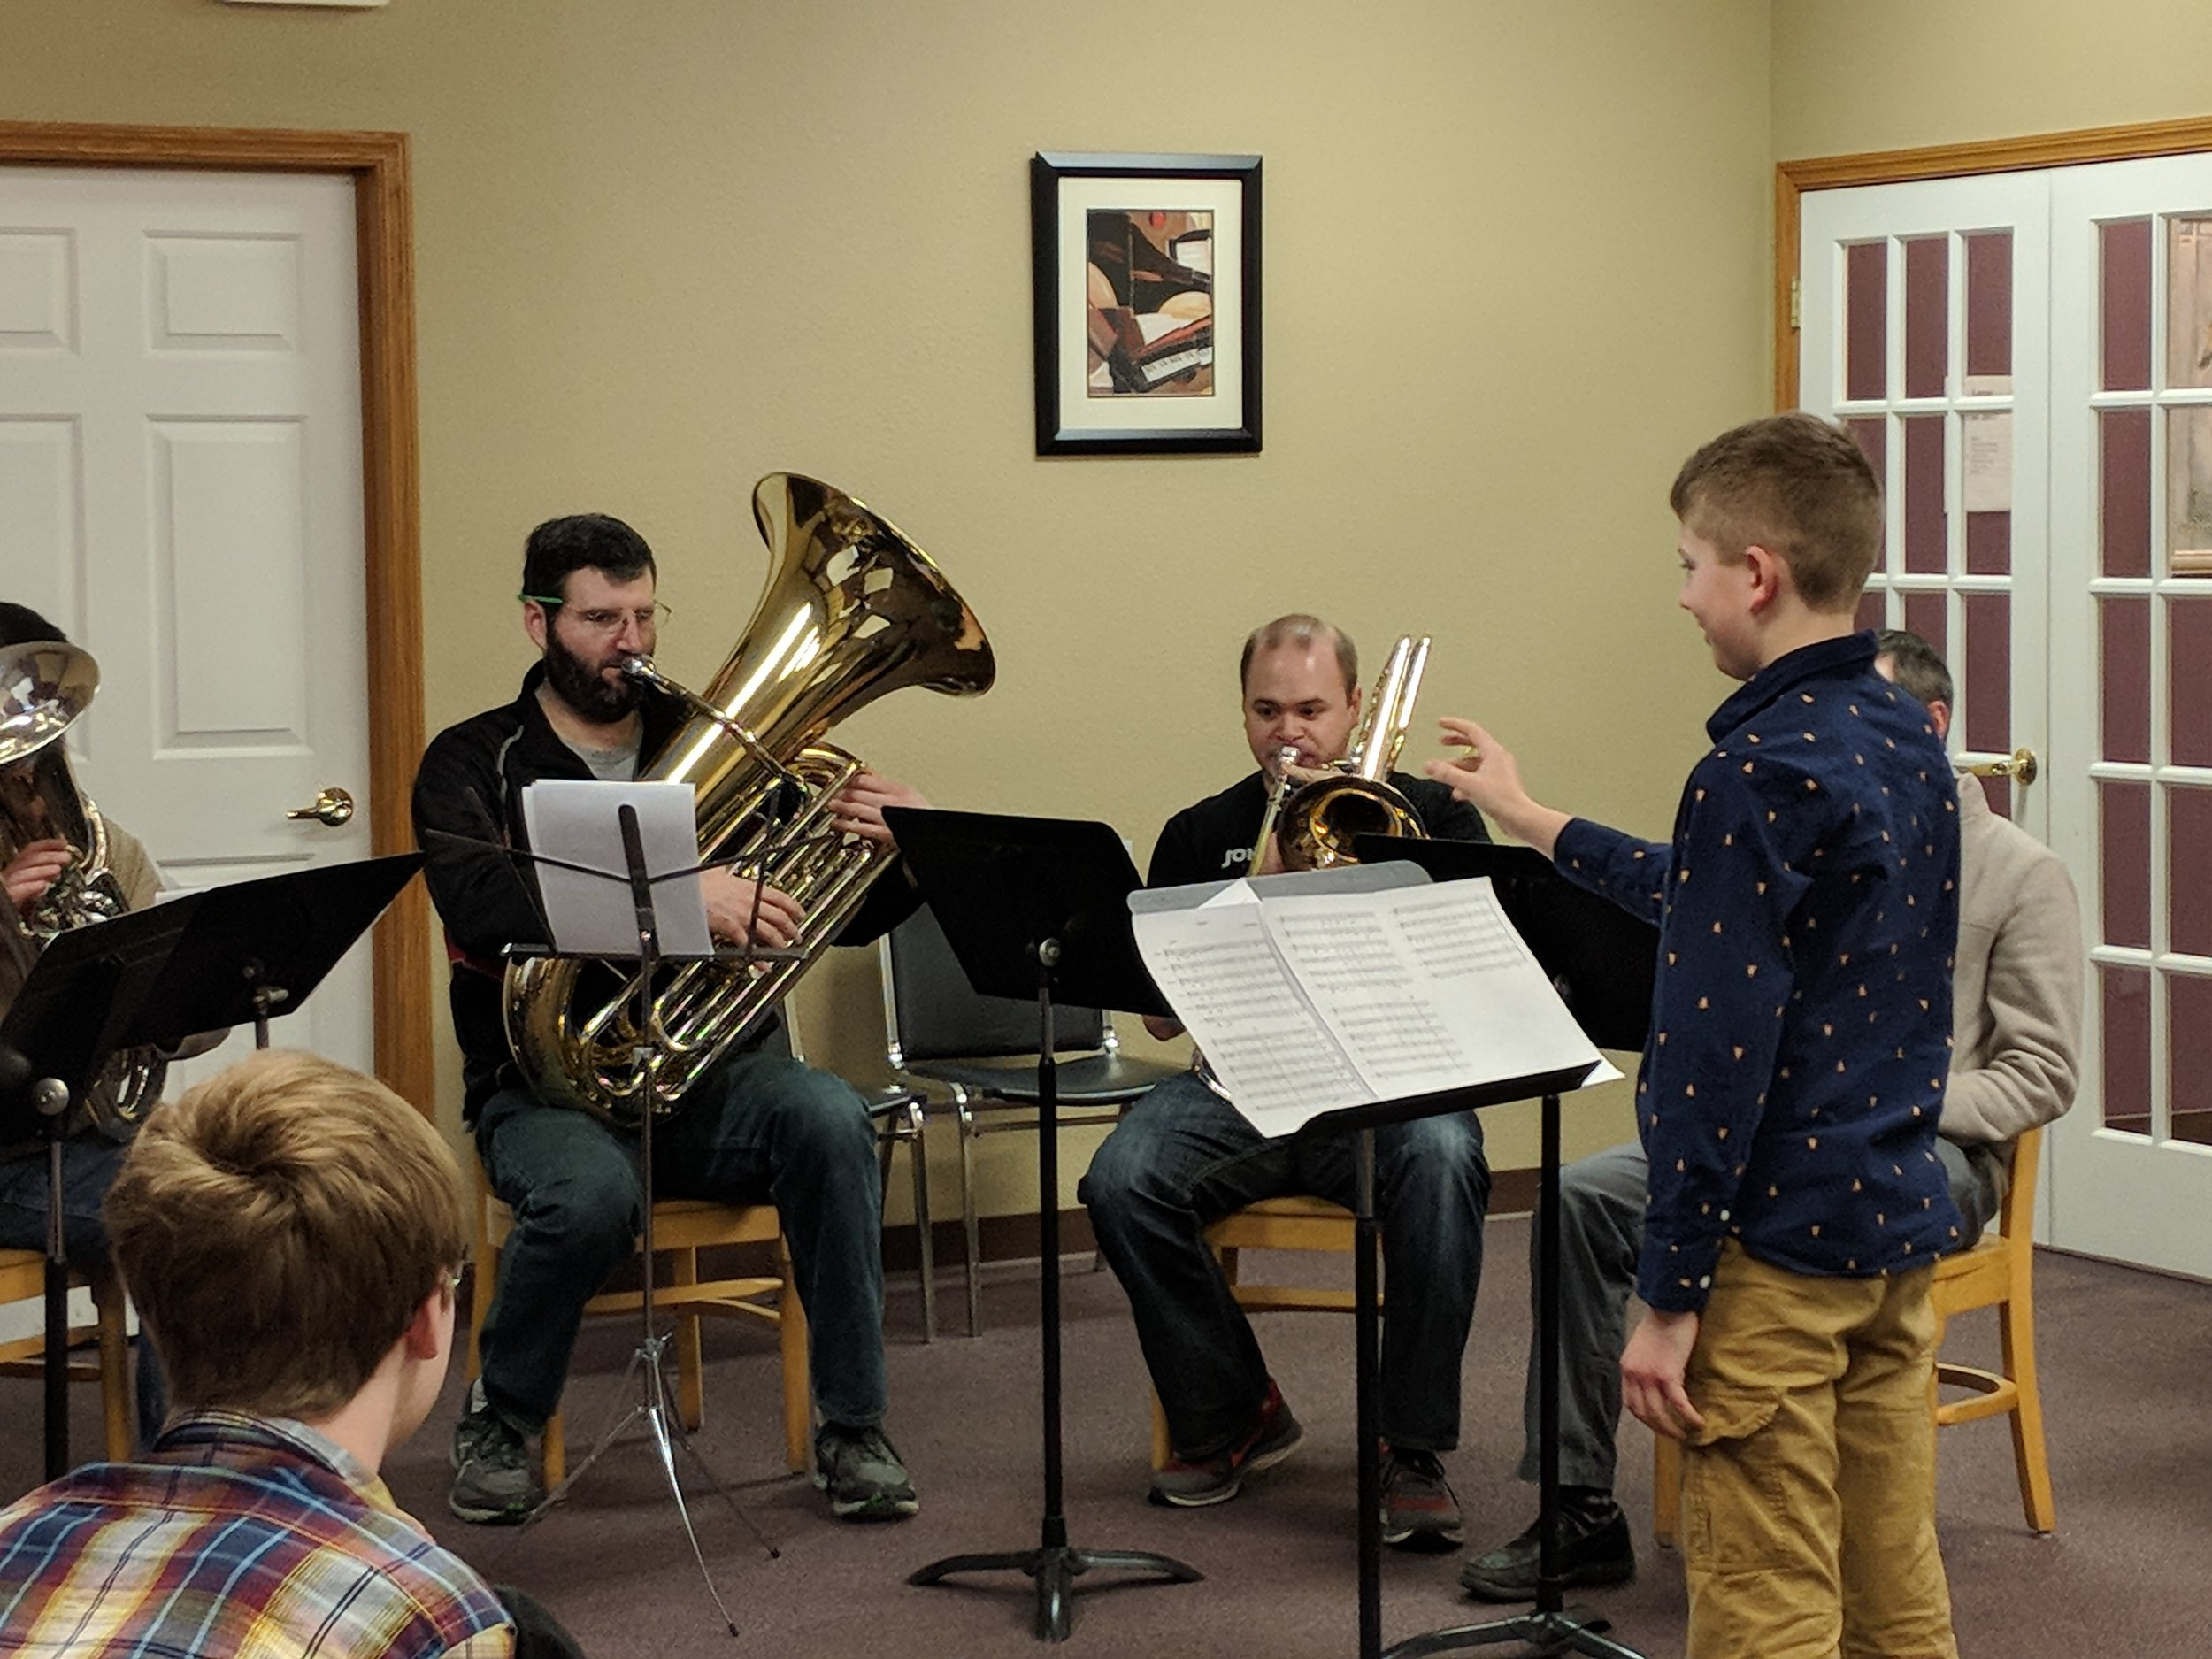 """""""Our kids are naturally curious and creative. The challenge is to help them maintain this curiosity and cultivate their creativity. Resonance is an amazing program that offers students the opportunity to develop and enhance their creative thinking through music composition. My son, Miles, absolutely loved translating his ideas into musical ideas that could be shared with others. He grew so much in just one year and continues to compose and share his ideas with others. I'm very grateful for the excellent teaching taking place at Prairie Music &Arts.""""  Chris Gleason Music Educator, Patrick Marsh Middle School Bands 2017 National Teacher of the Year Finalist 2017 Wisconsin MS Teacher of the Year CMP Committee Band Festival at the Kalahari Manager"""